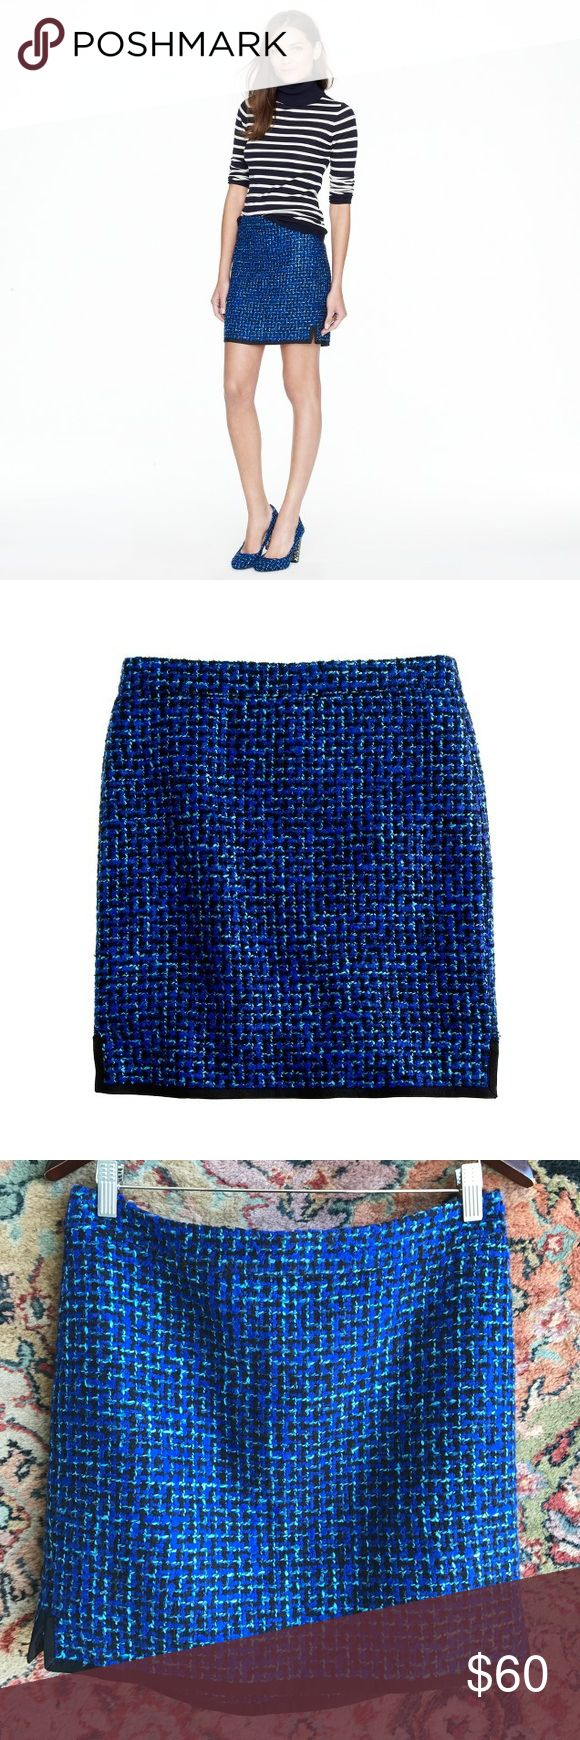 """J Crew Postage Stamp Mini Skirt in Indigo Tweed We love an abbreviated silhouette but went to great lengths to tweak this mini's hem so you'll never feel overexposed. Crafted in a subtle A-line shape to hang off the hip, it's absolutely of the moment in an indigo tweed that makes your entire wardrobe pop.  Acrylic/poly/wool/cotton. Sits above waist. Back zip. 16 1/2"""" long, 16"""" waist  Lined. J. Crew Skirts"""